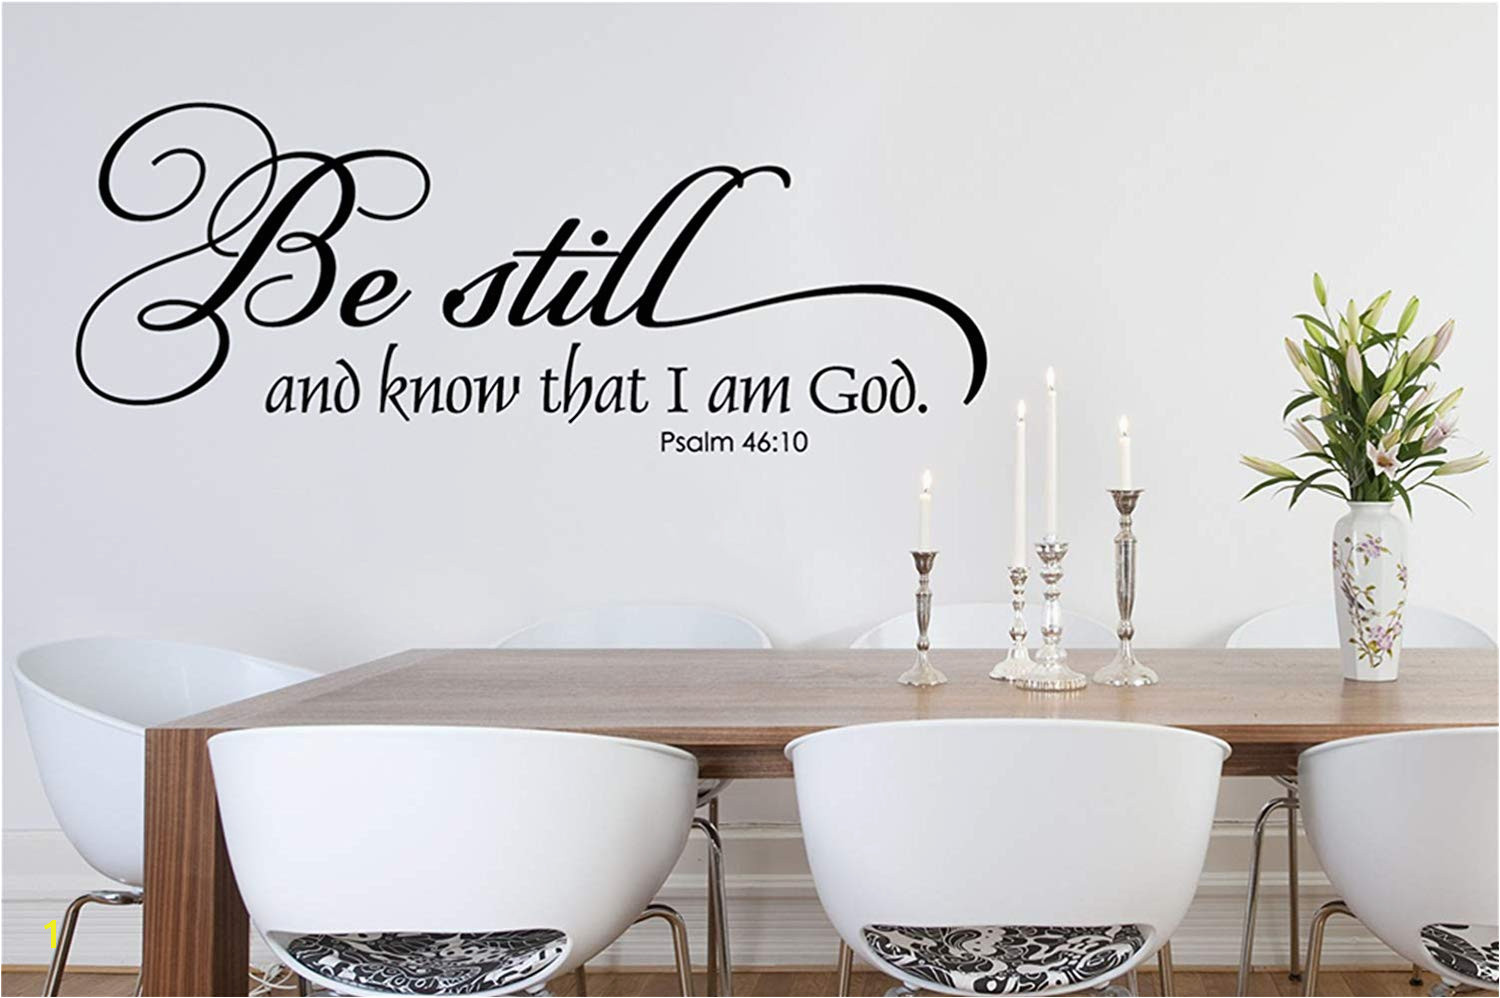 Removable Wall Murals for Cheap Amazon Vinyl Removable Wall Stickers Mural Decal Art Family